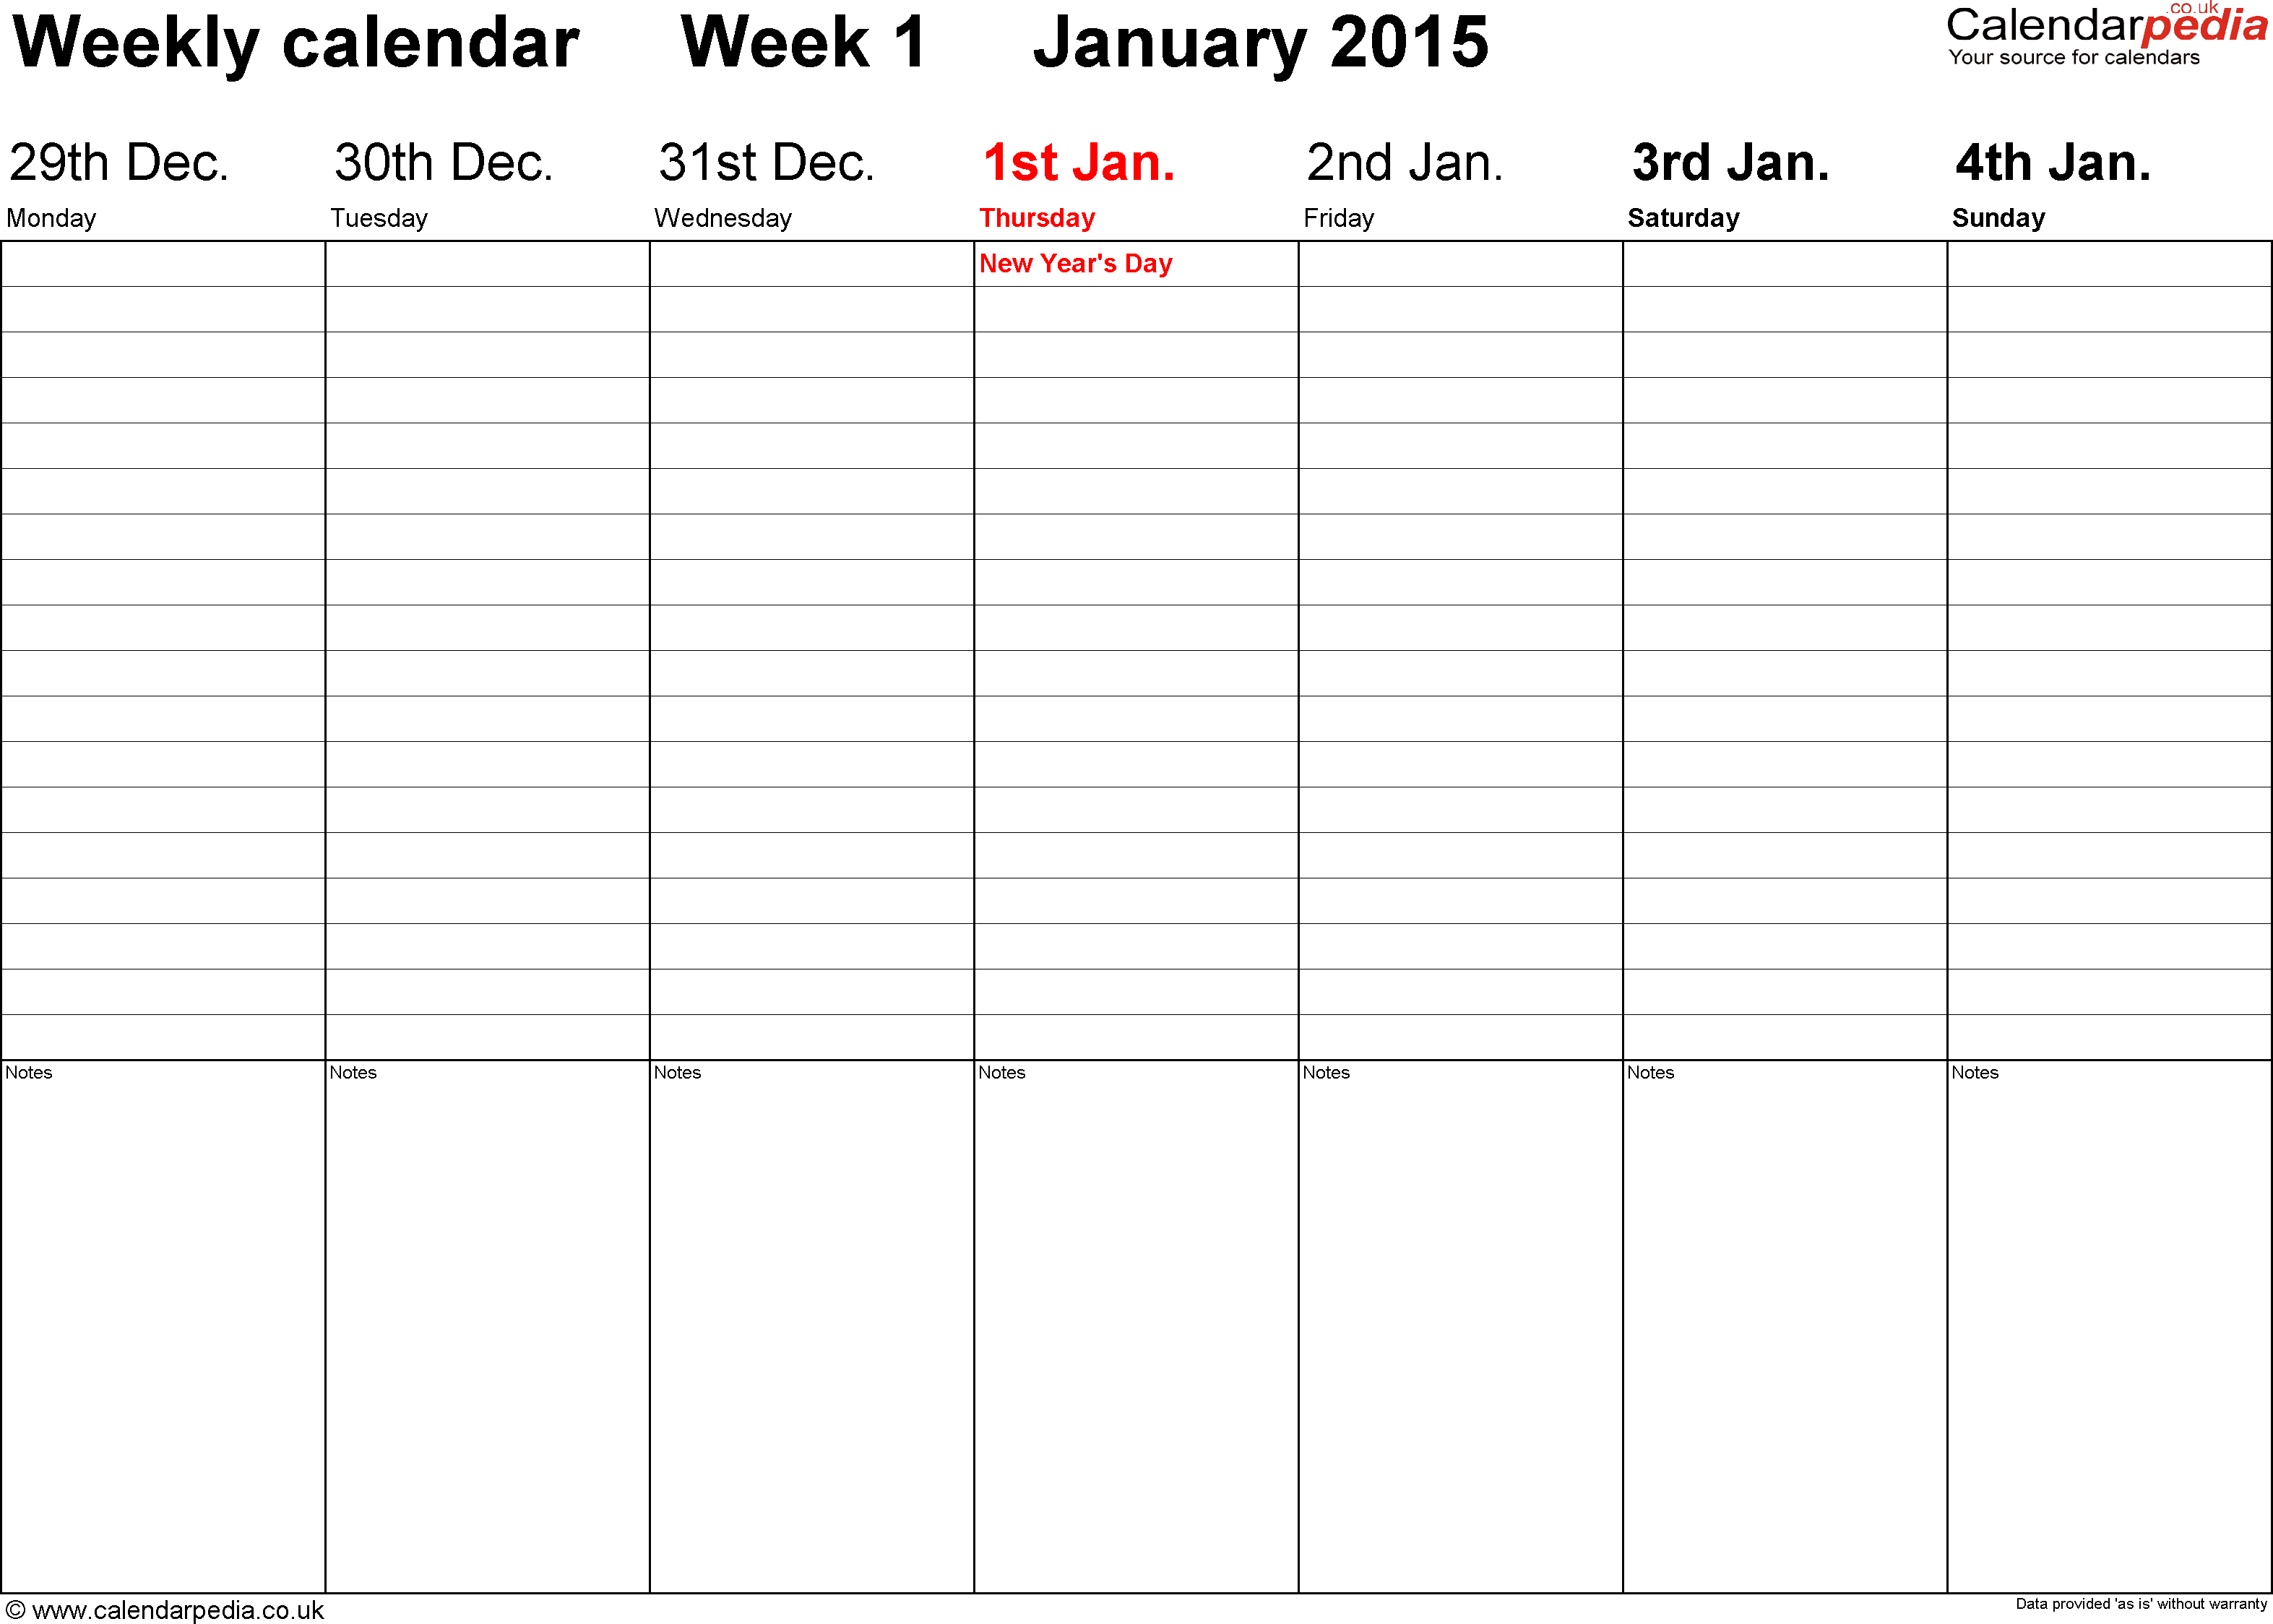 Weekly calendar 2015 UK free printable templates for Word – Printable Calendars Sample